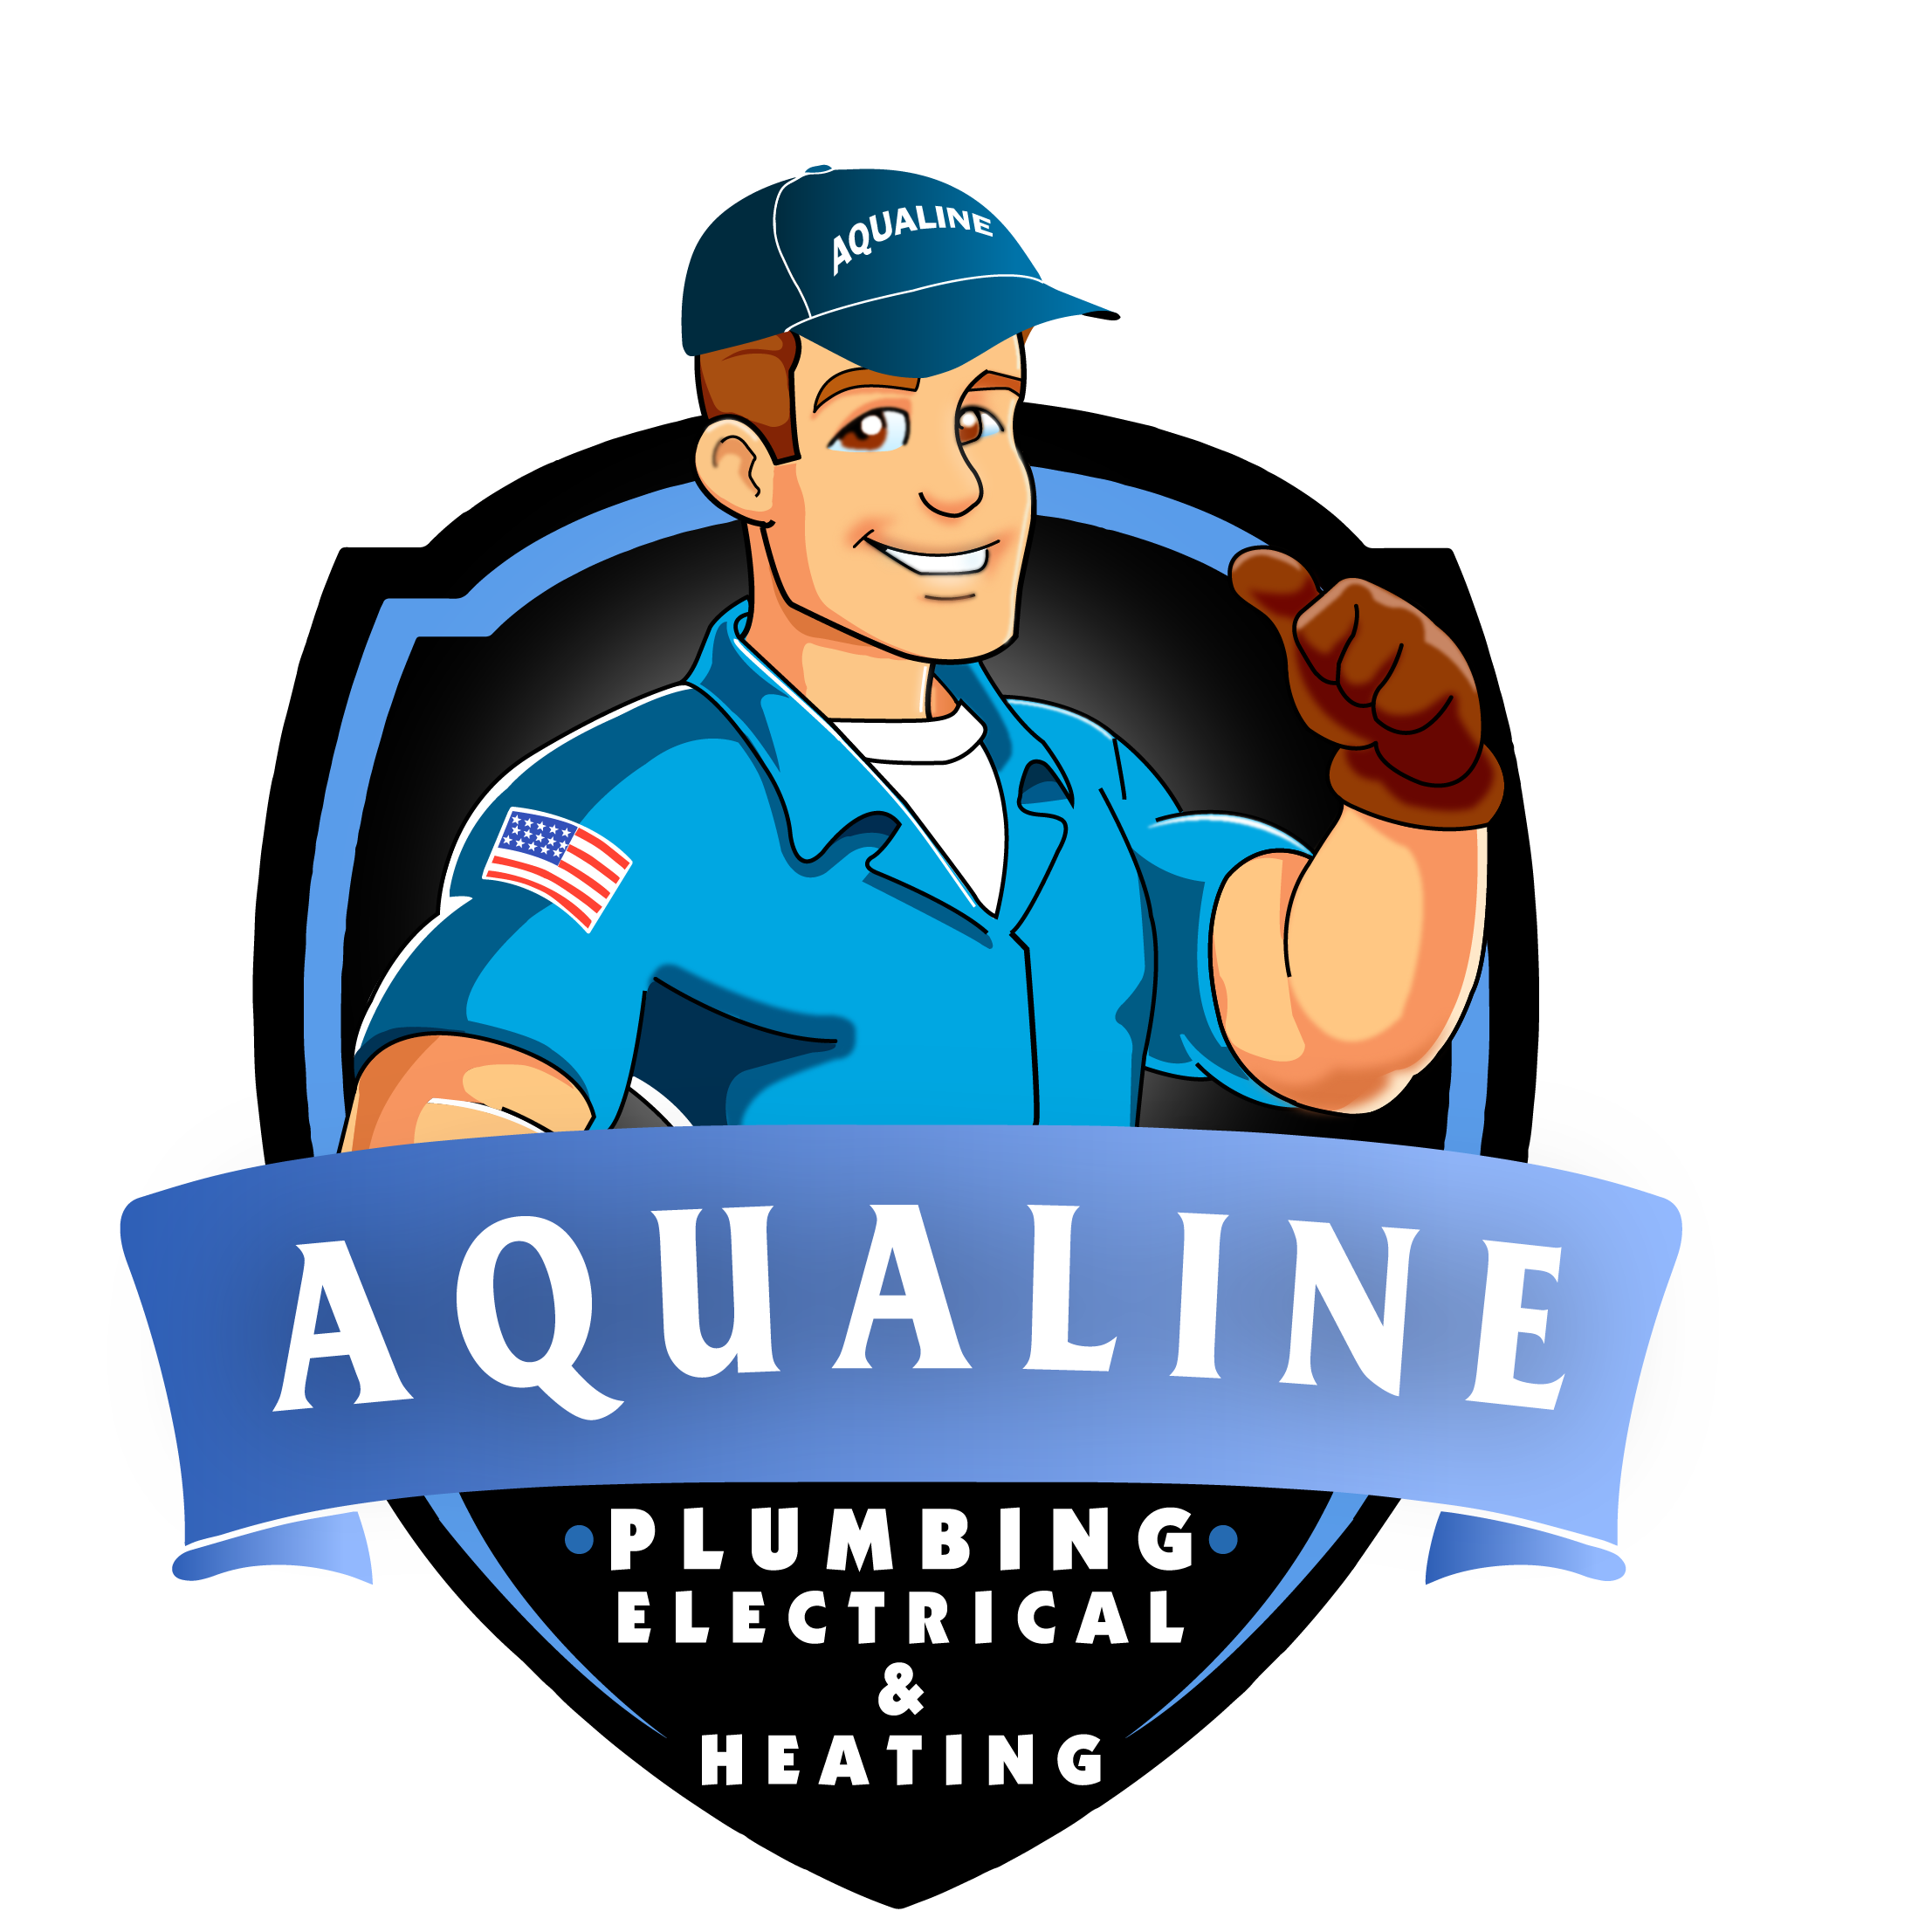 Aqualine Plumbing, Electrical & Heating image 0